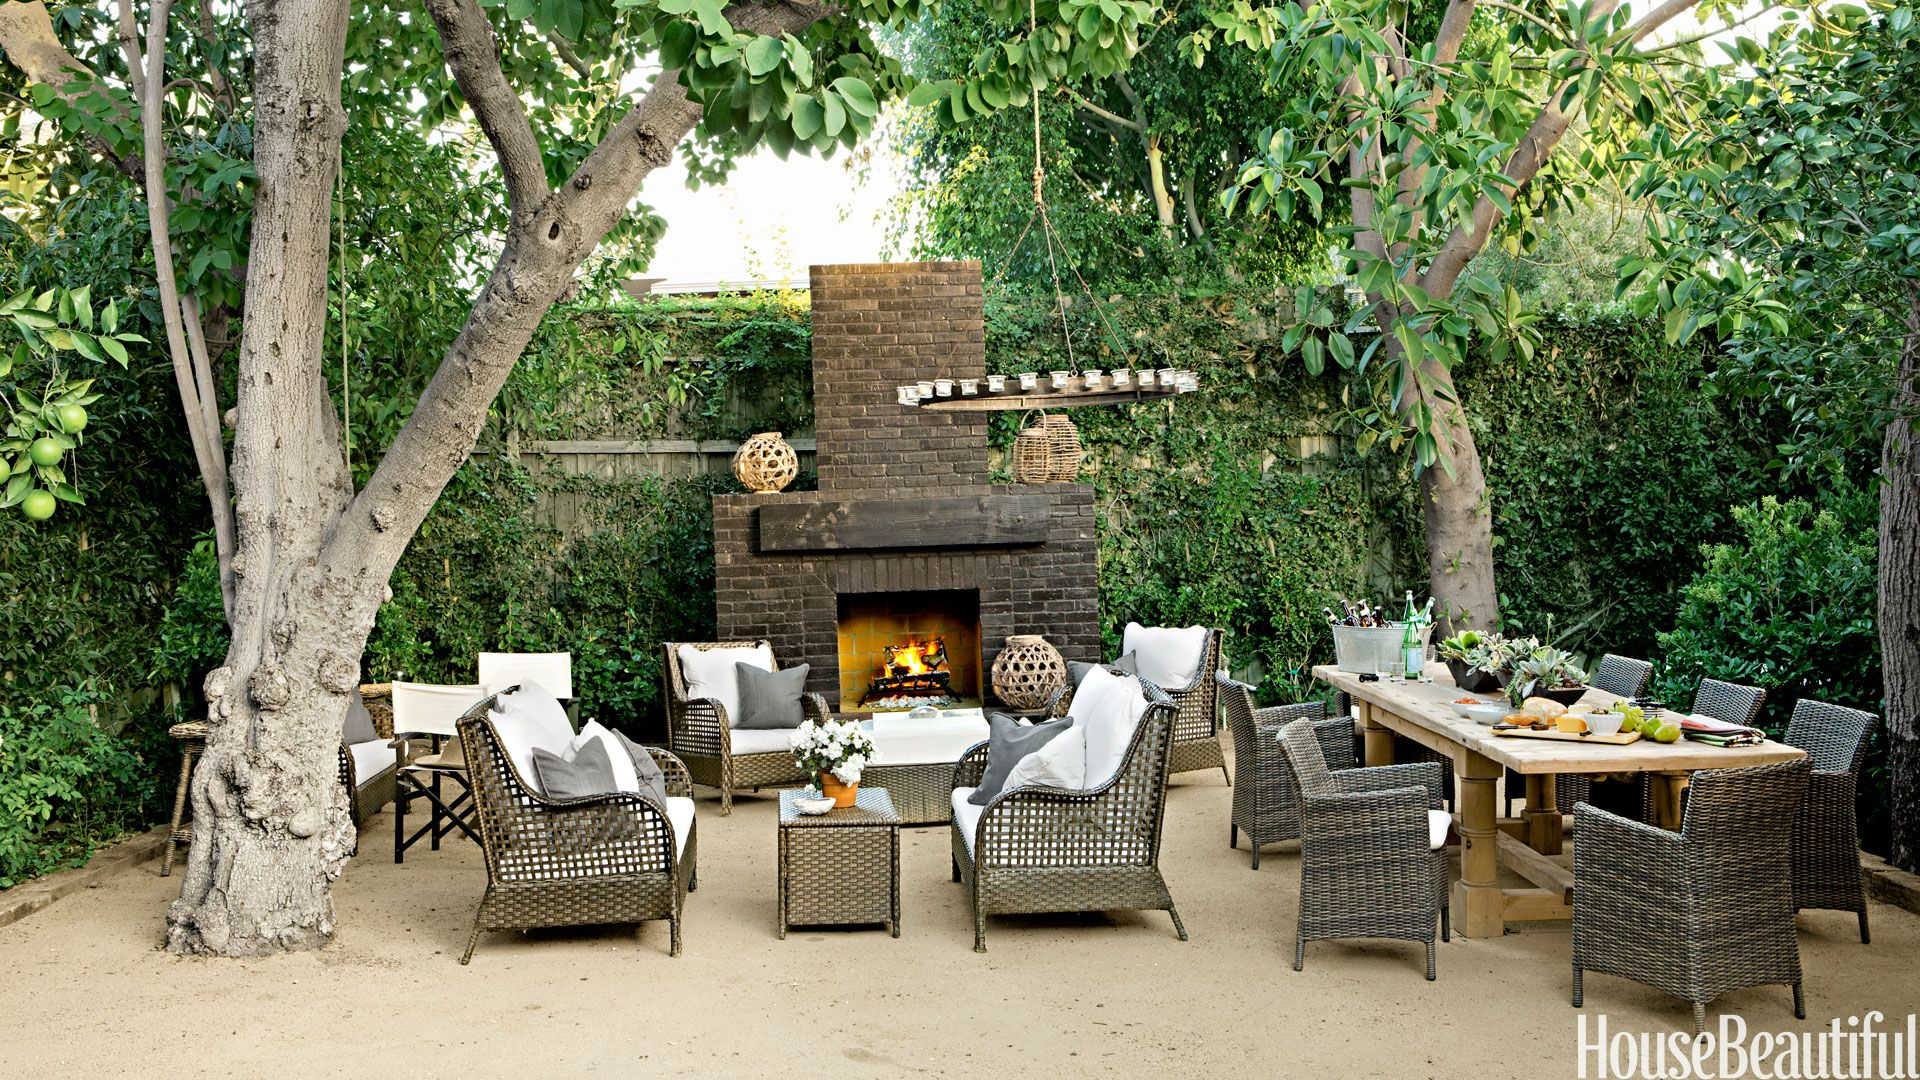 Design Backyard Patio the place for pizza 87 Patio And Outdoor Room Design Ideas And Photos